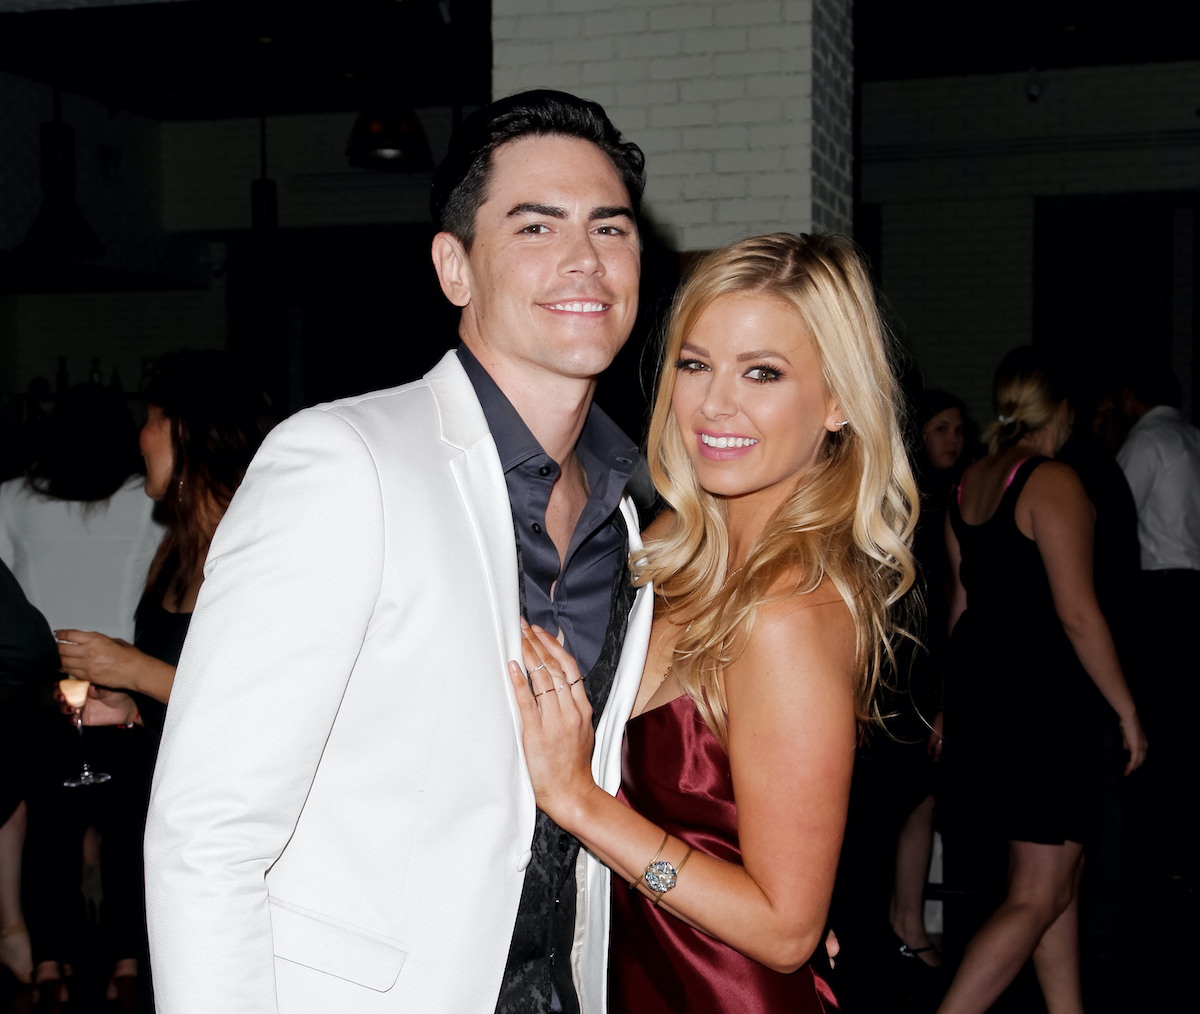 Tom Sandoval and Ariana Madix attend the Vanderpump Rules premiere party in 2015